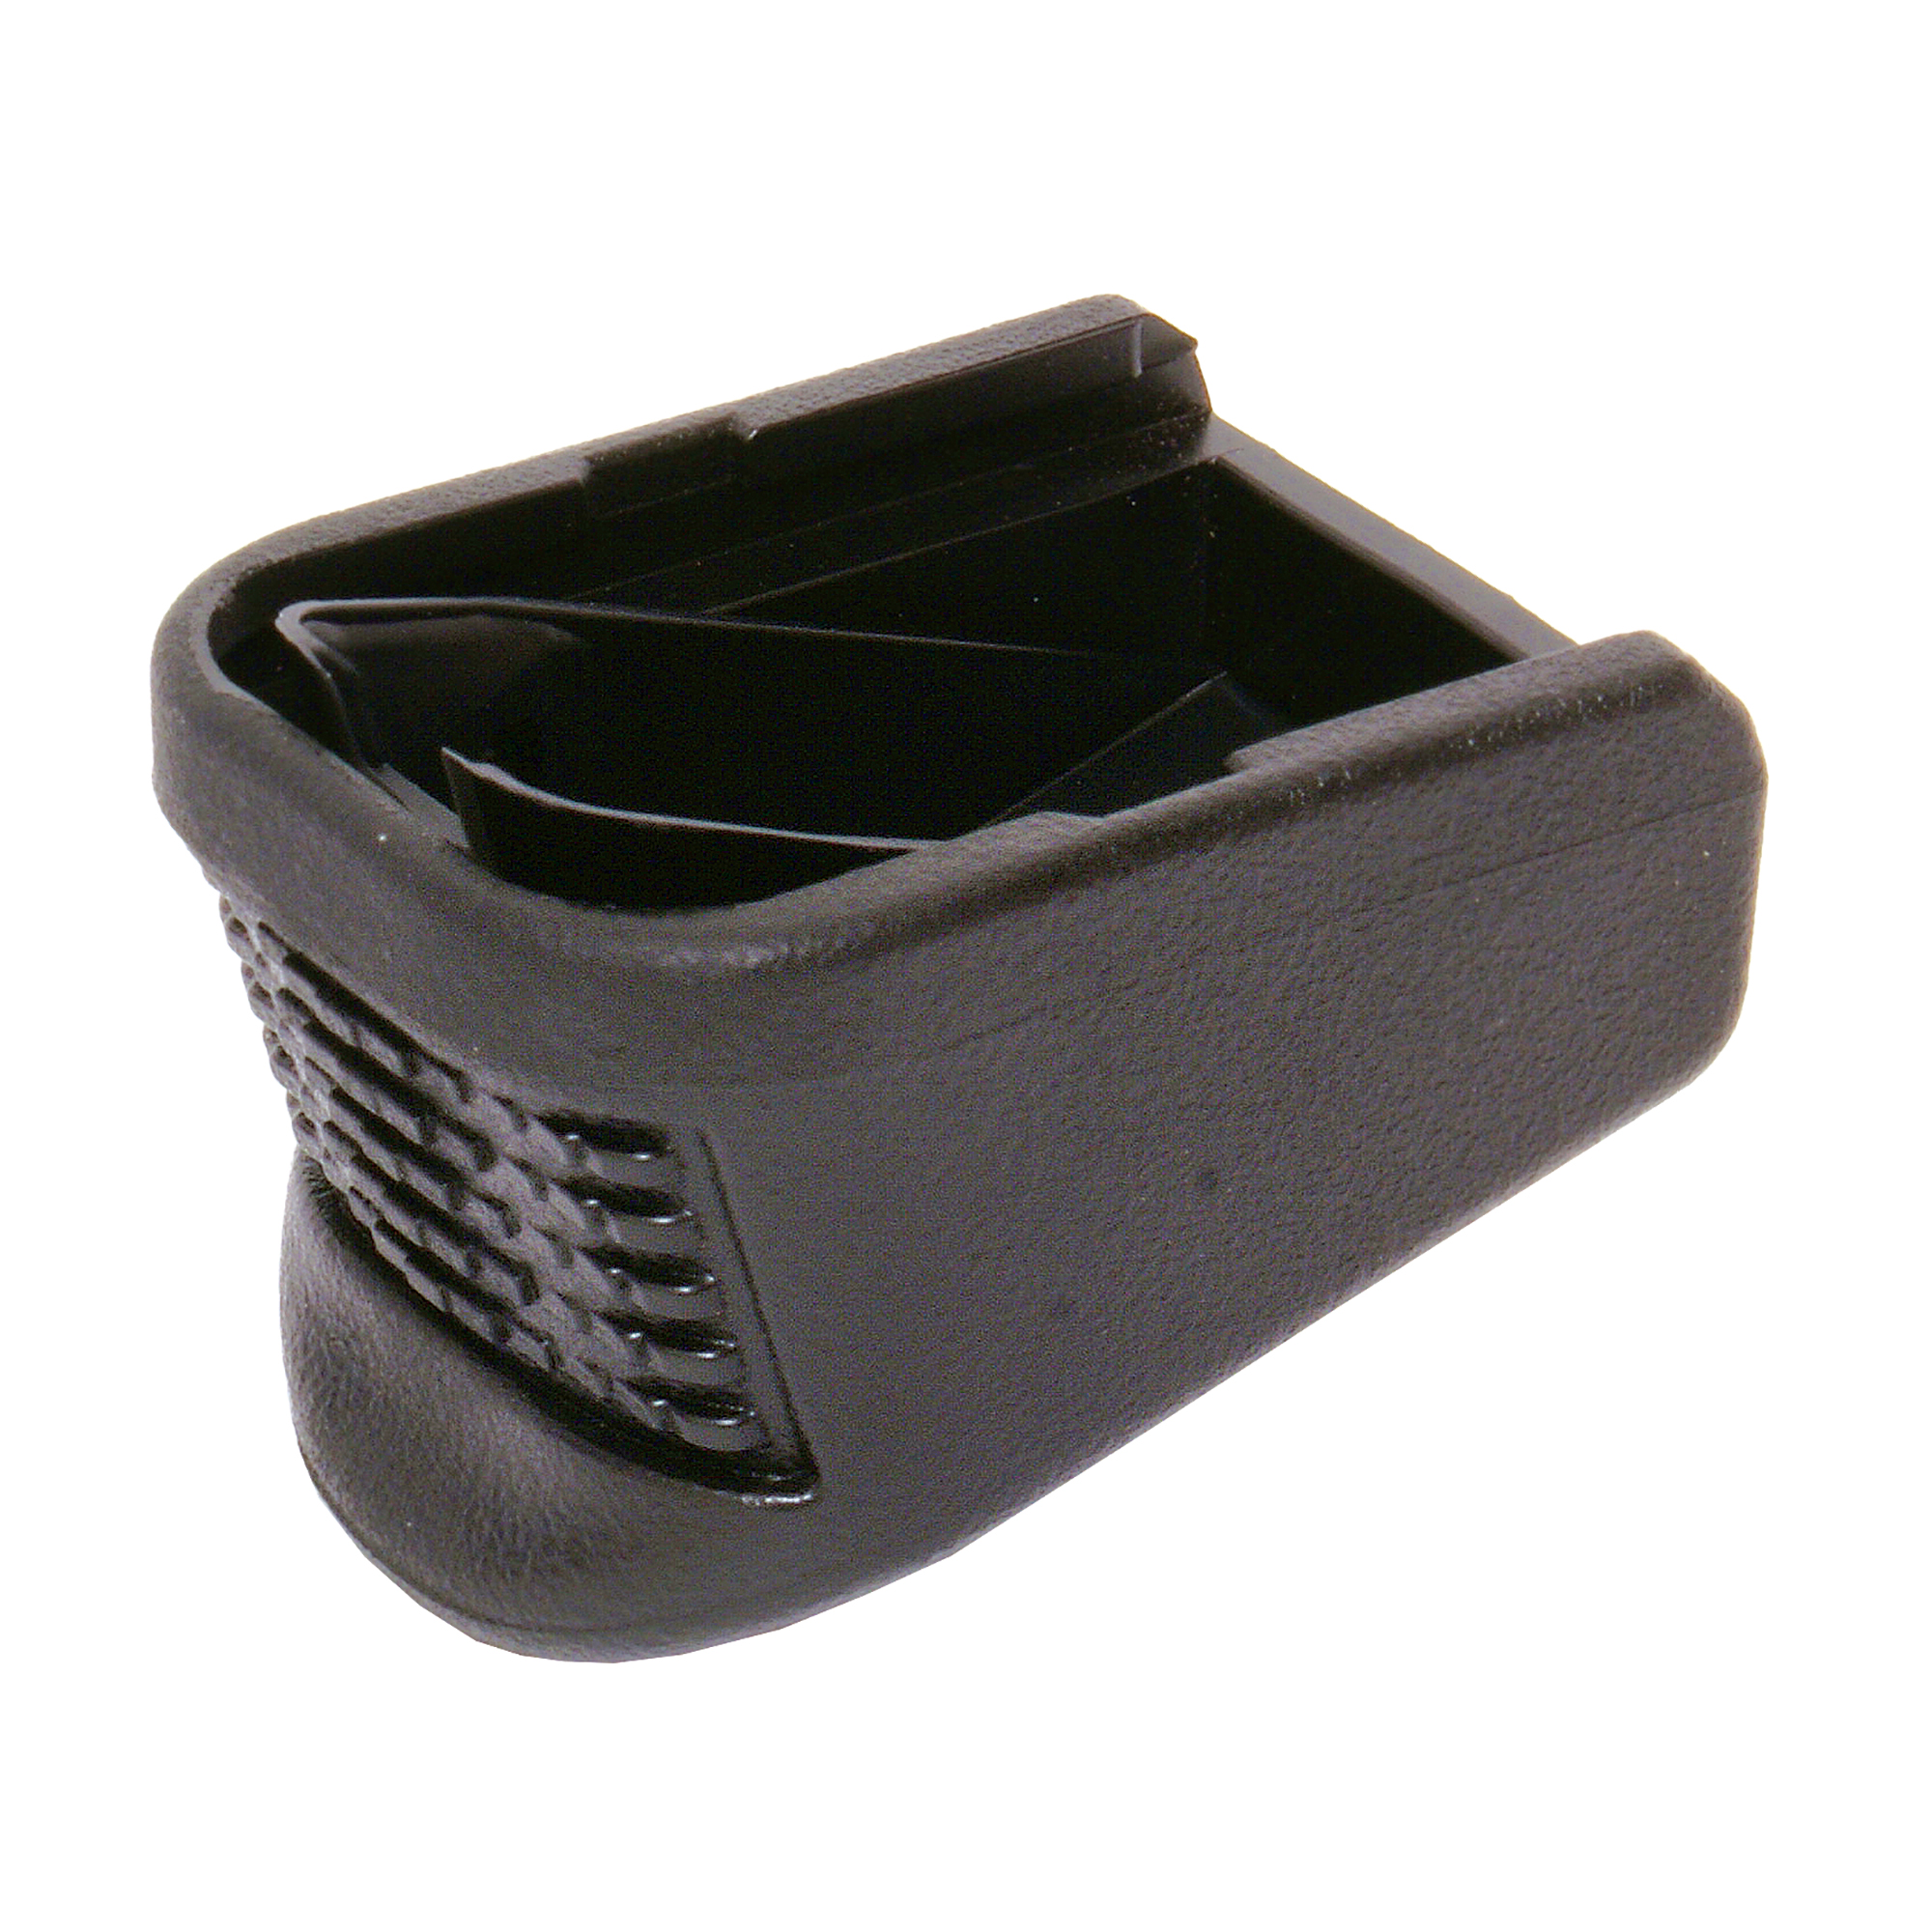 """This unit adds capacity to Mid and Full Size Glock high capacity magazines. This magazine extension replaces the original floor plate and internal locking plate and adds three rounds to a 9mm; two rounds to a 40SW and 357SIG"""" and one round to a 45GAP magazine."""